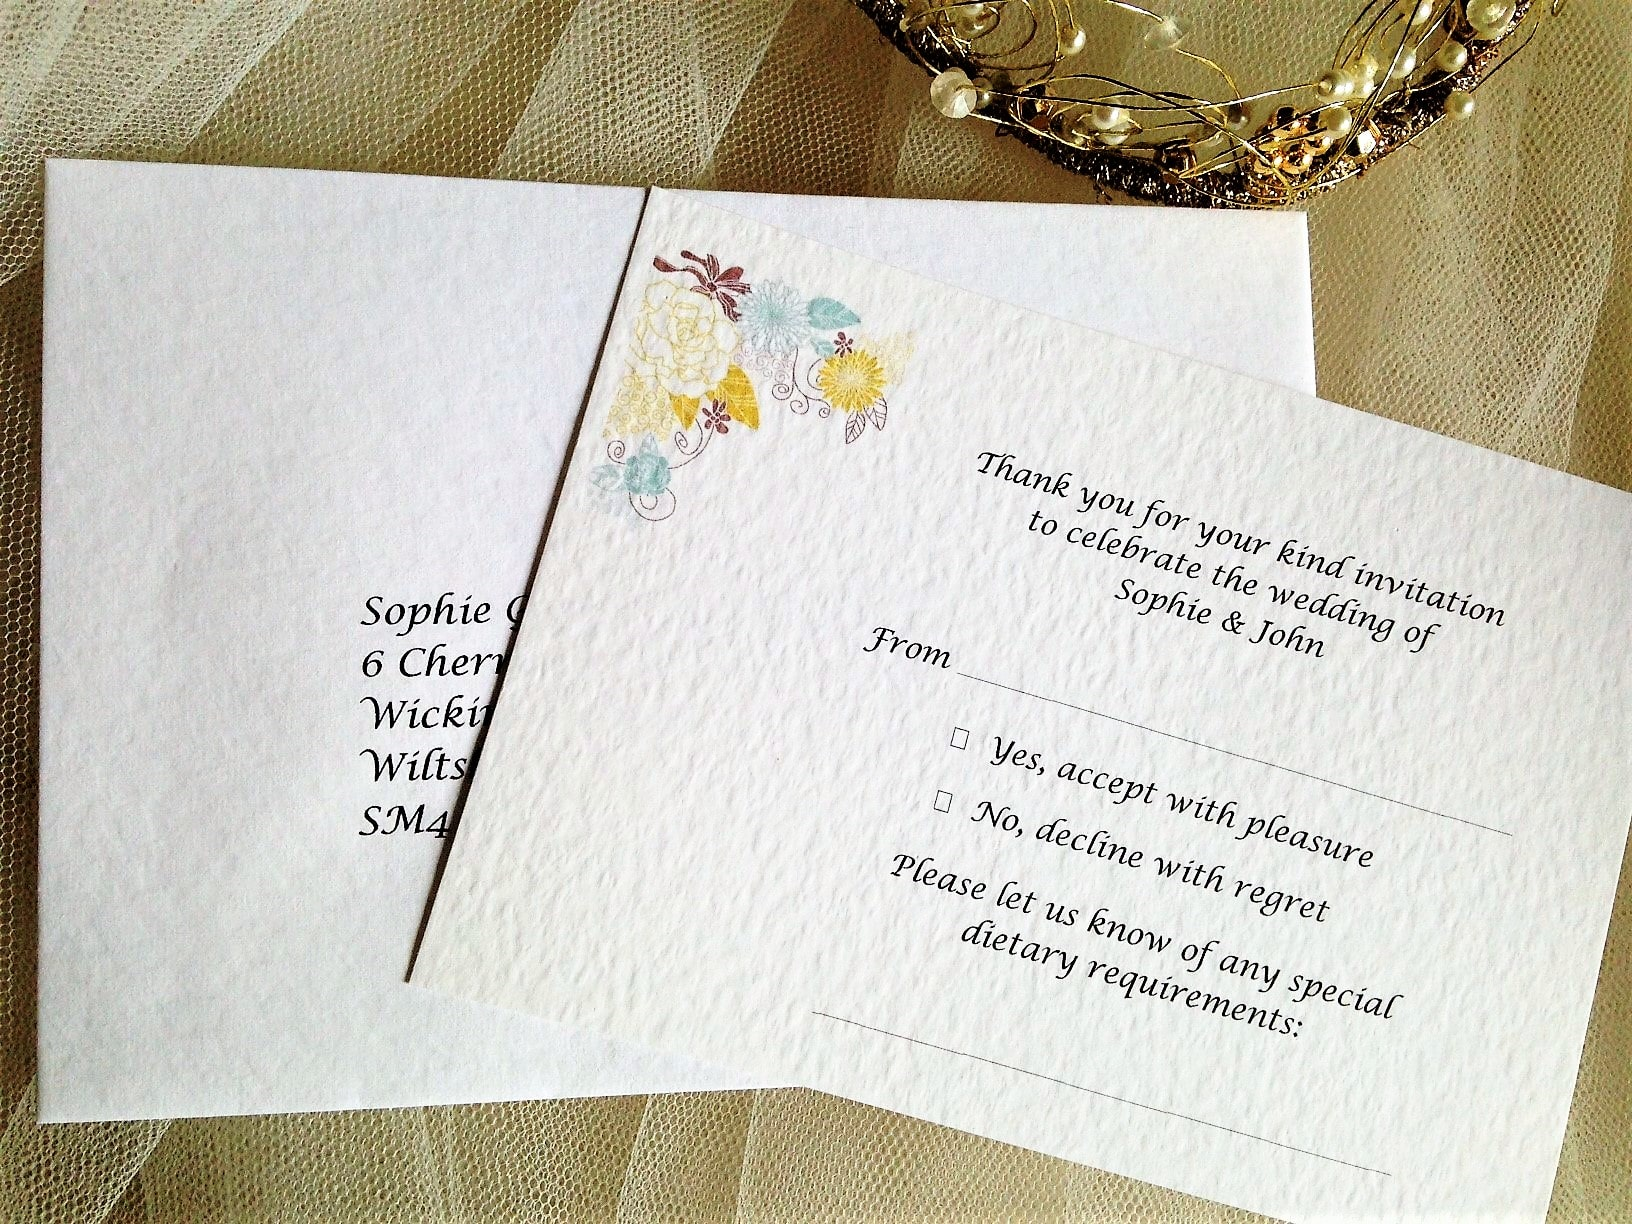 Wedding Invitations With Response Cards And Envelopes: Blooms RSVP Cards And Envelopes